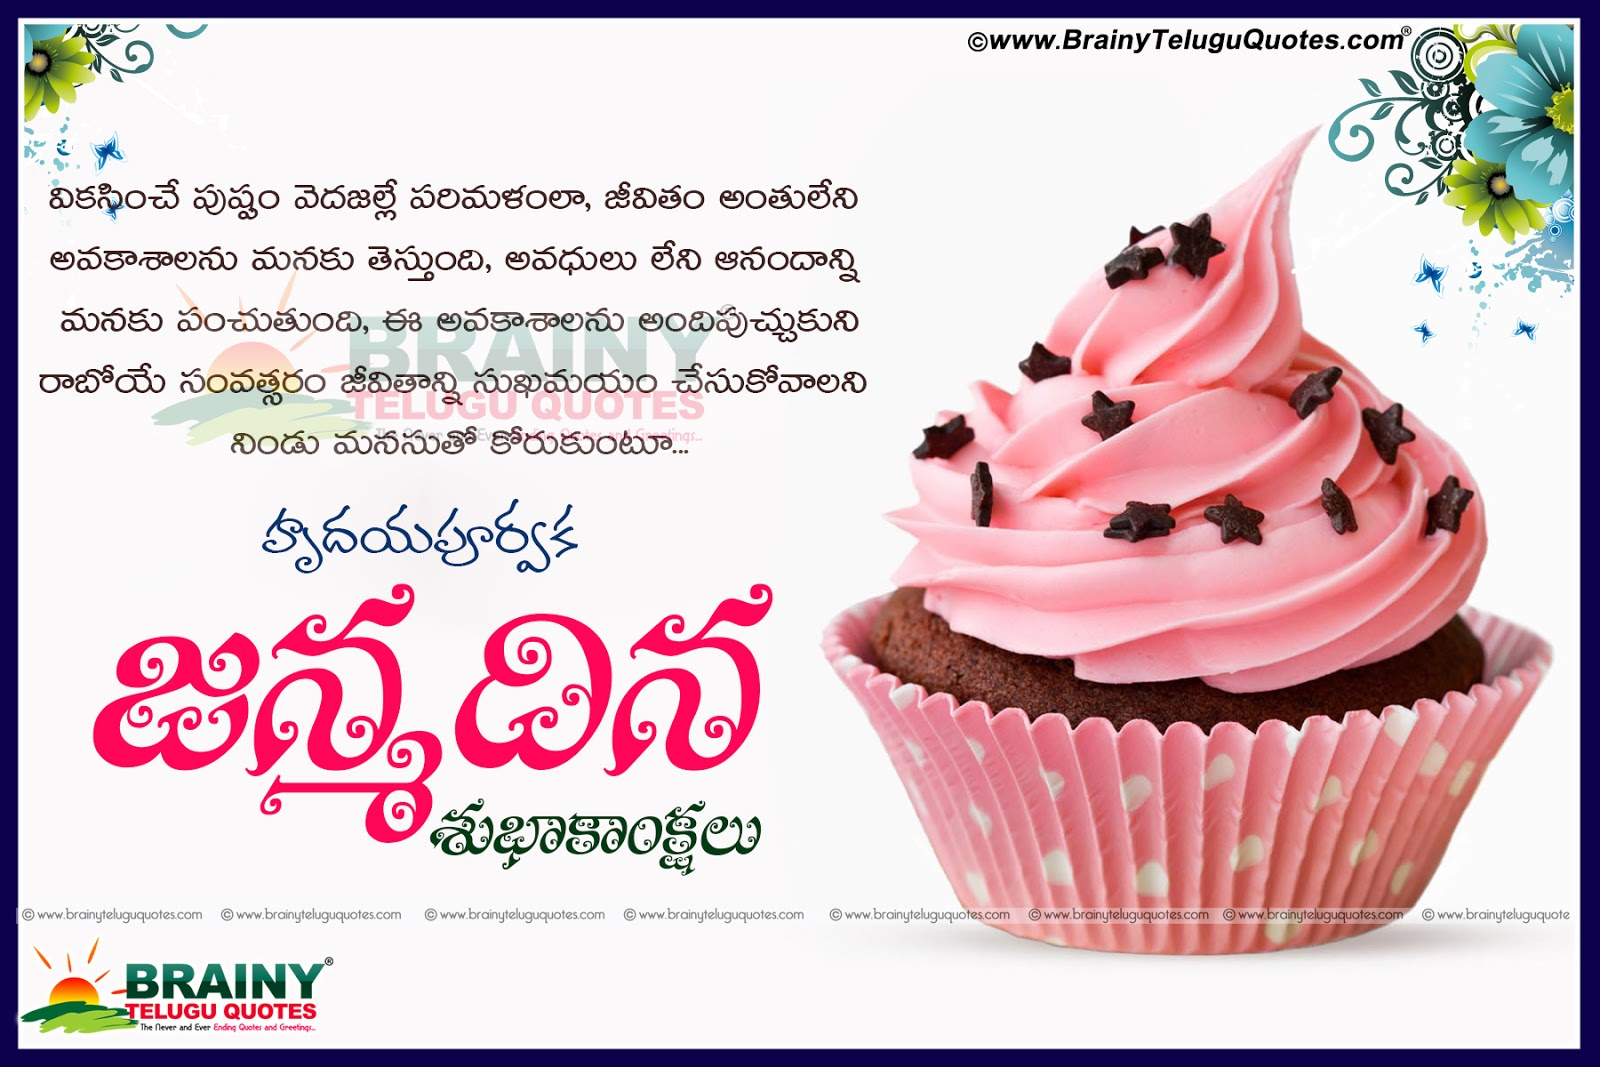 Telugu happy birthday greeting in telugu with birthday kavithalu telugu nice birthday photo comments famous telugu birthday wishes in telugu language awesome telugu birthday greetings for sir telugu birthday greetings m4hsunfo